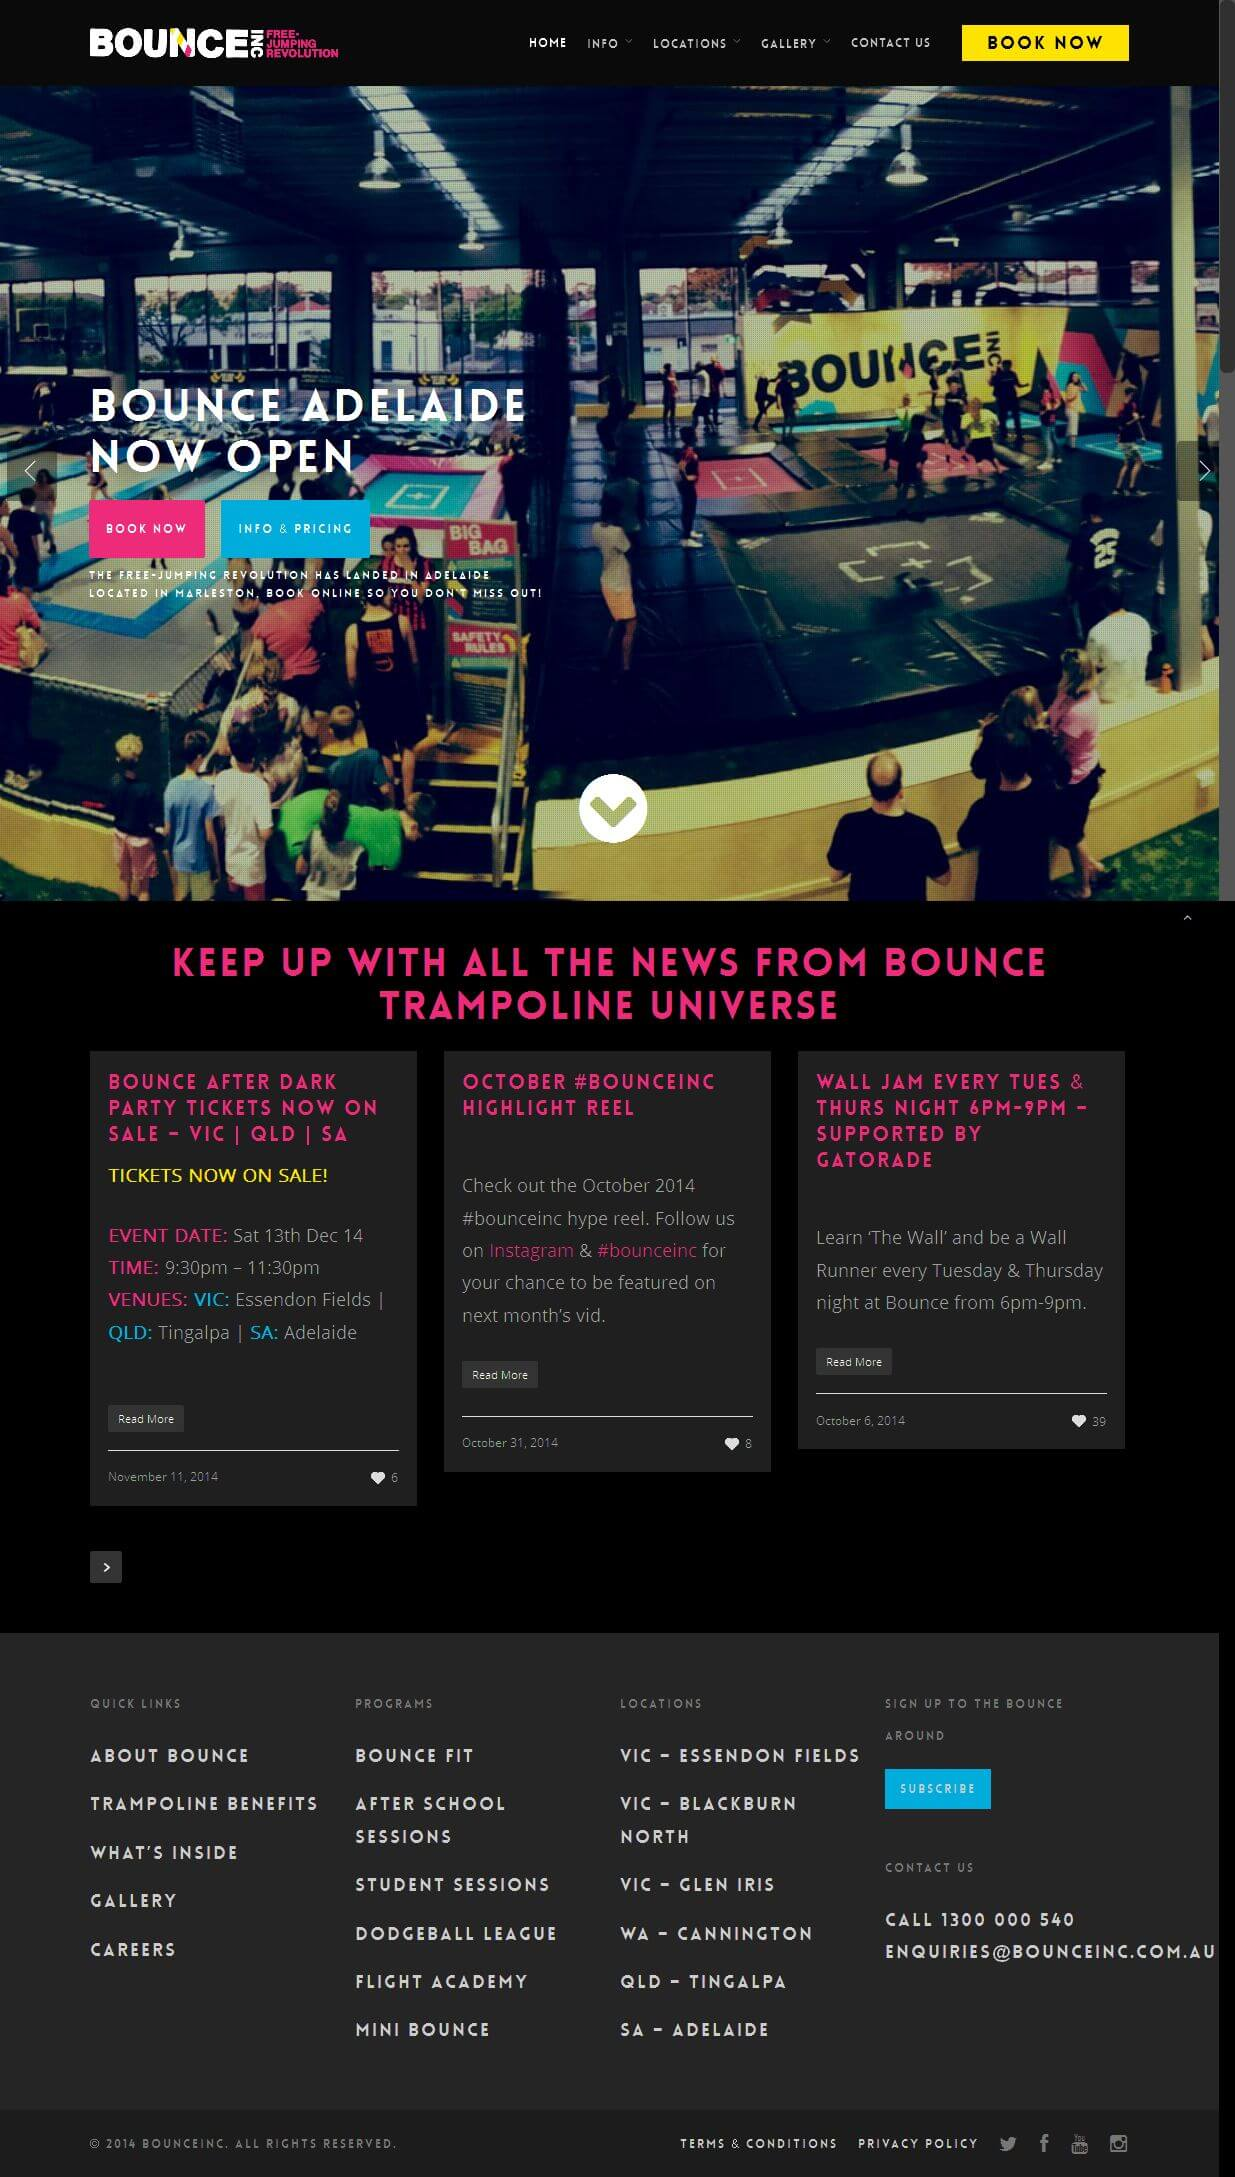 Redevelopment of an Existing Entertainment-based Website